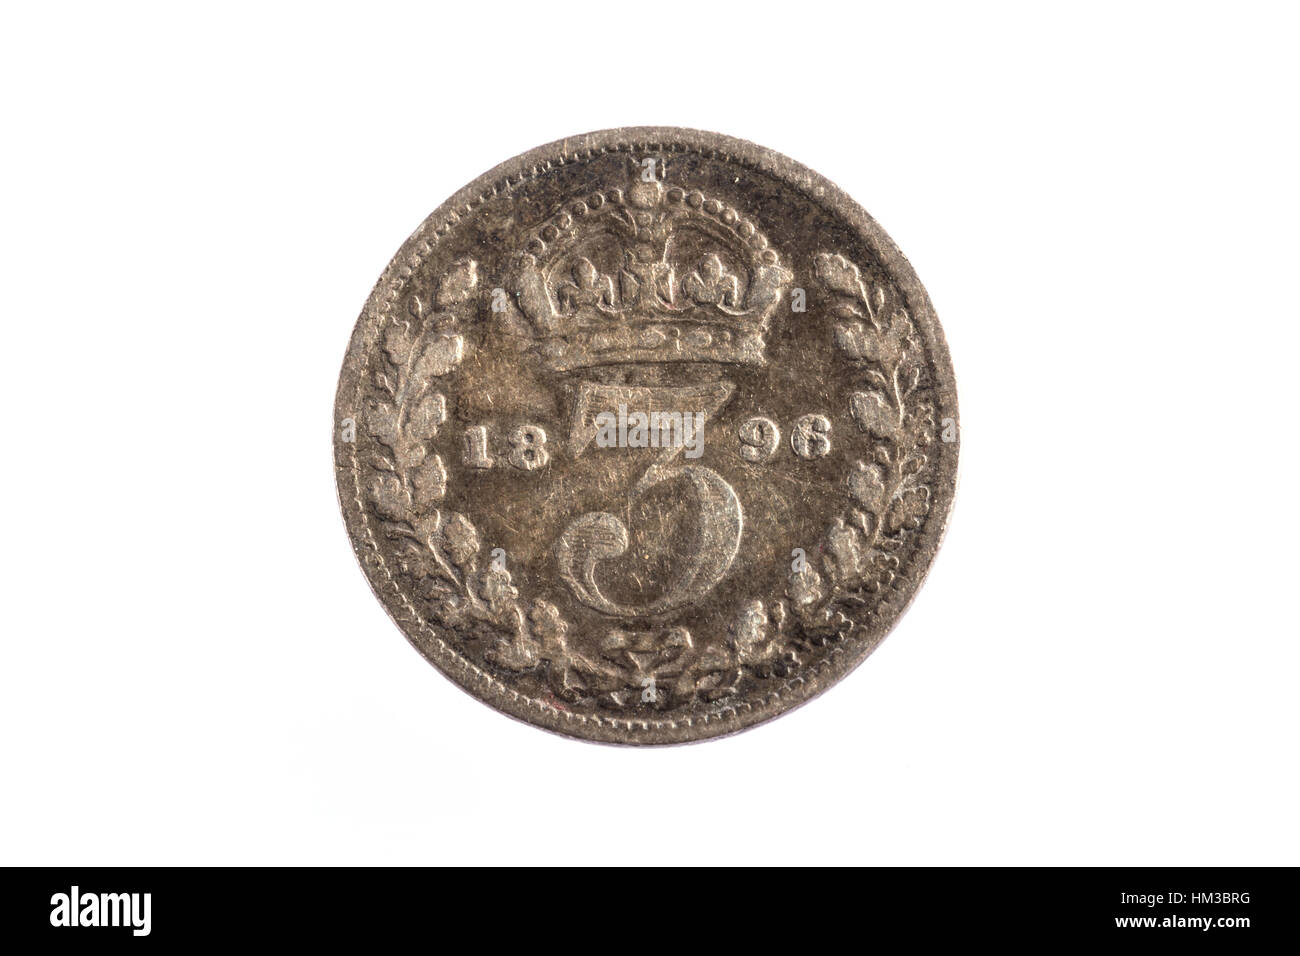 An 1898 Three Penny imperial coin Stock Photo